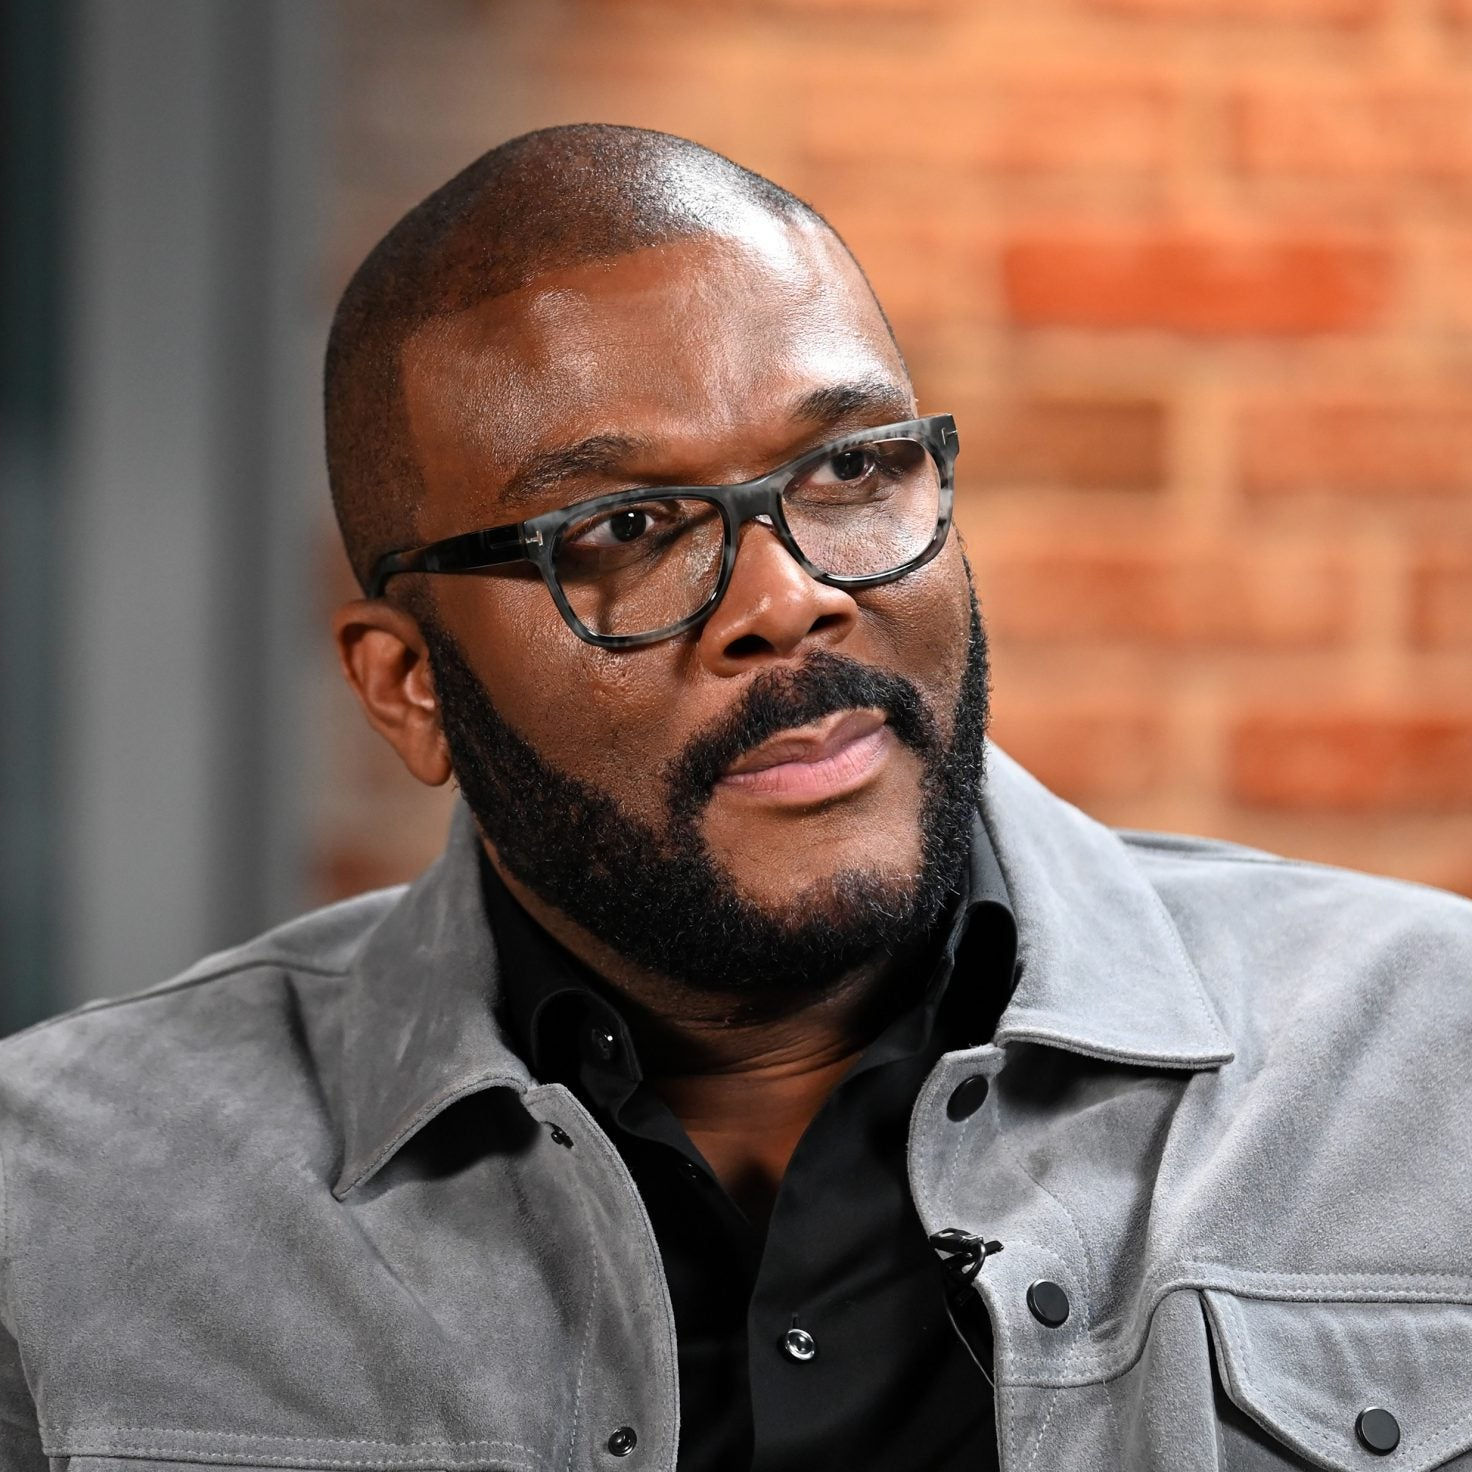 Tyler Perry's Nephew Dead At 26 After Apparent Suicide In Prison